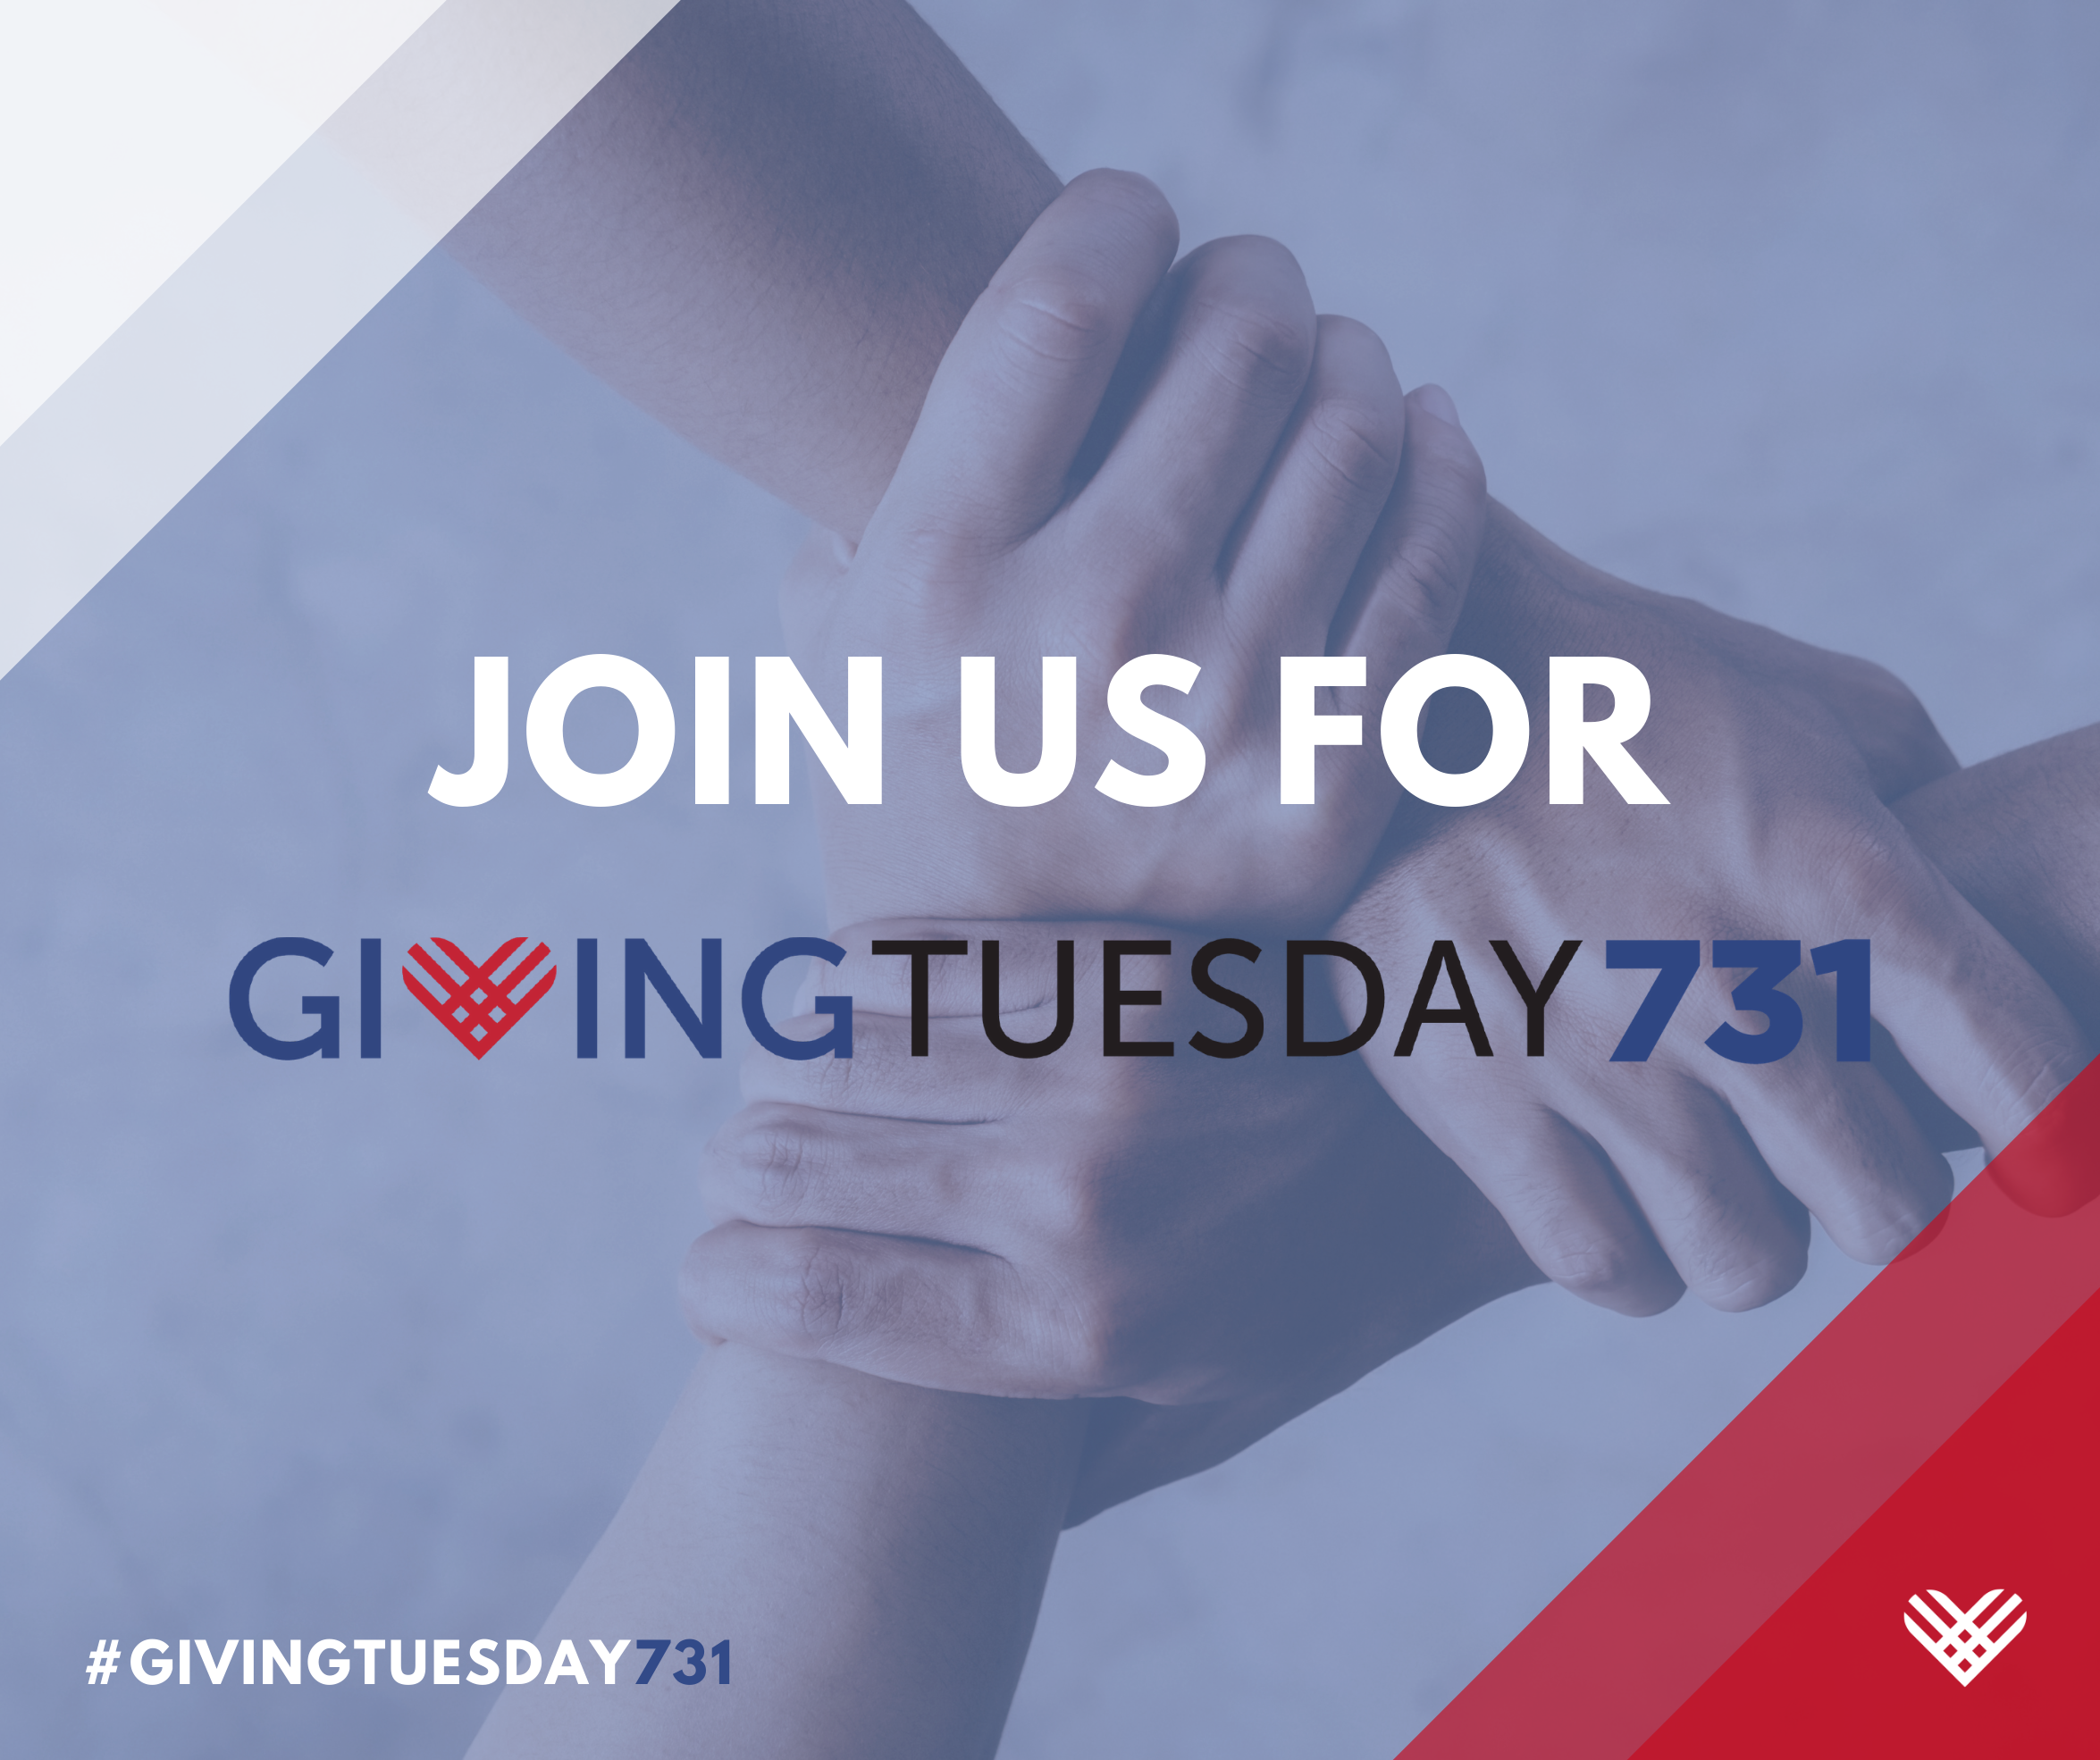 #GivingTuesday731